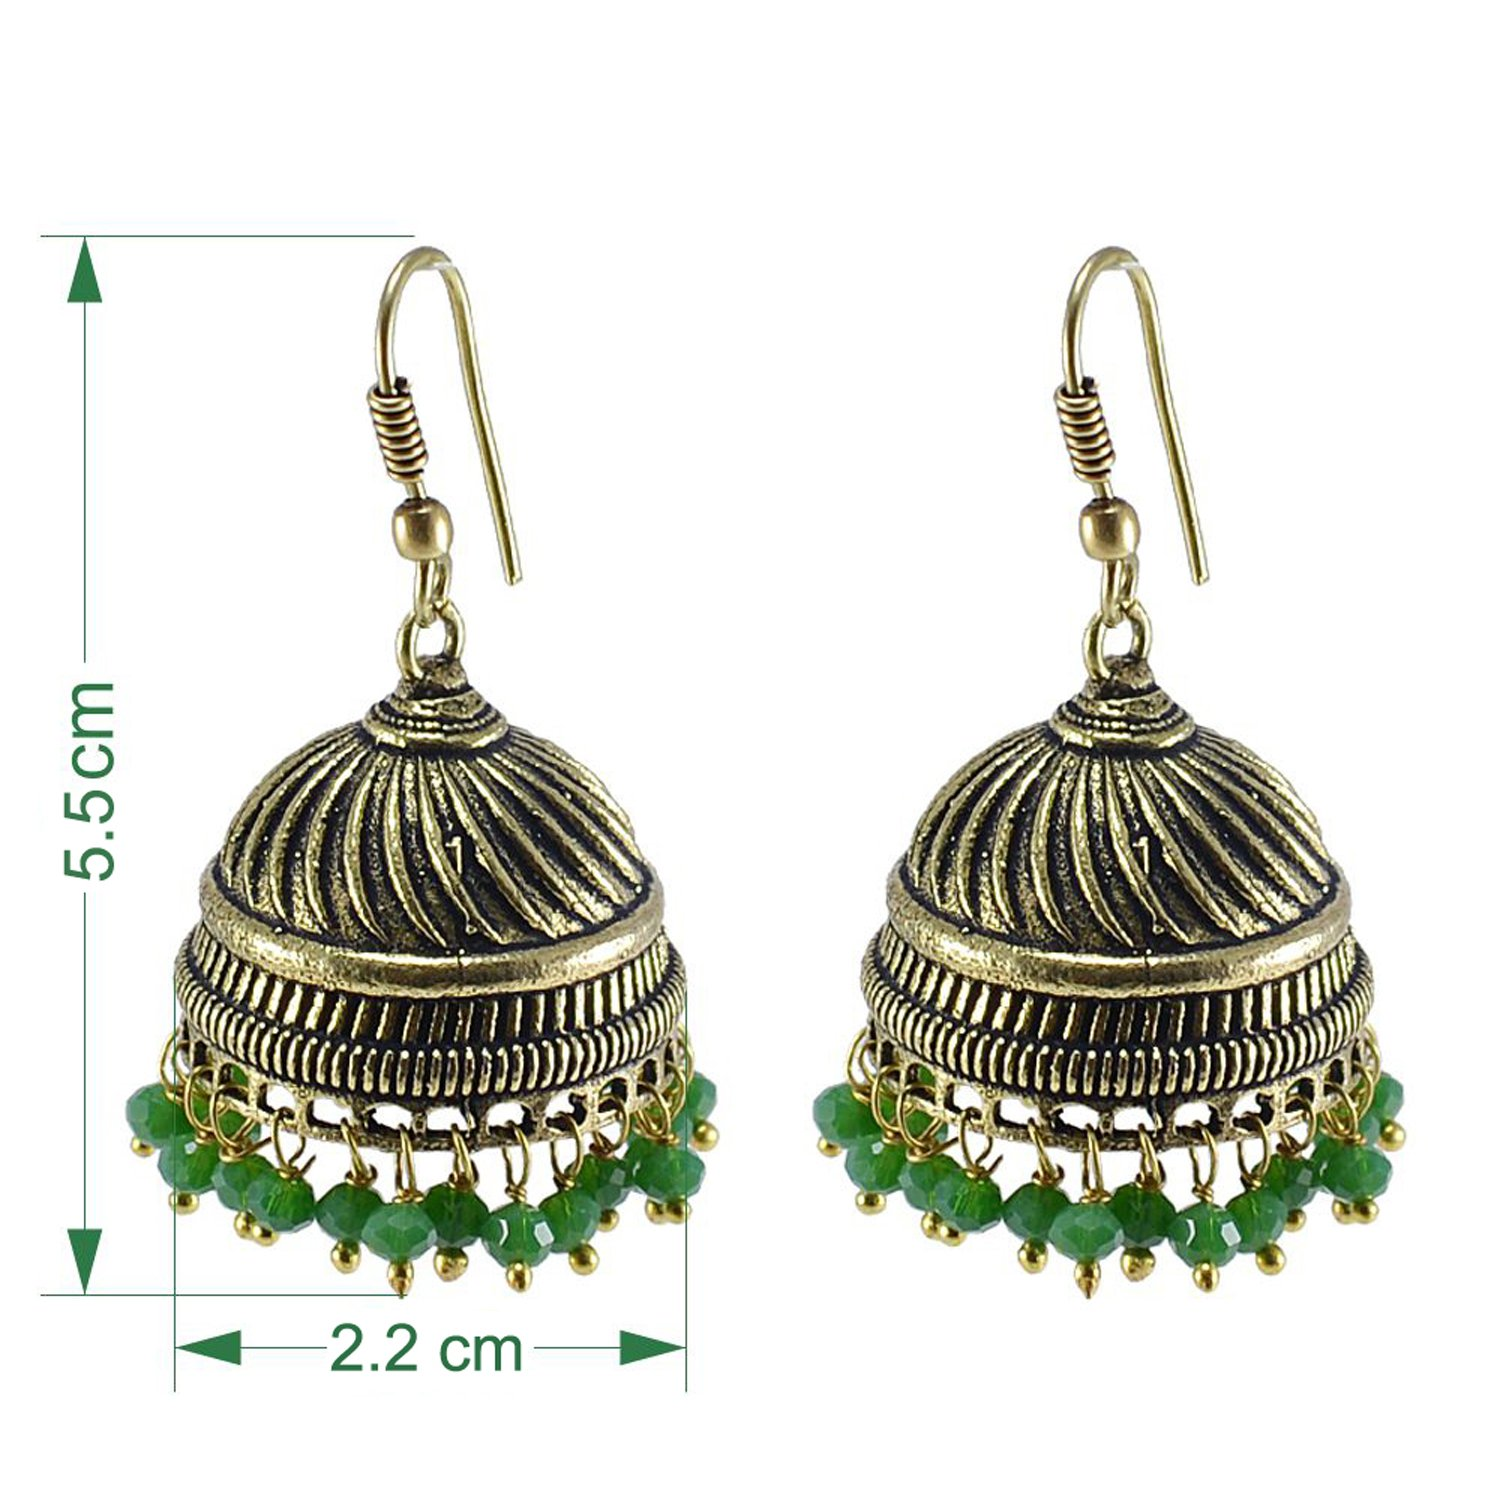 Silvesto India Jaipur Traditional Oxidized Brass Fashion Handmade Jhumki With Small Green Crystals PG-102485